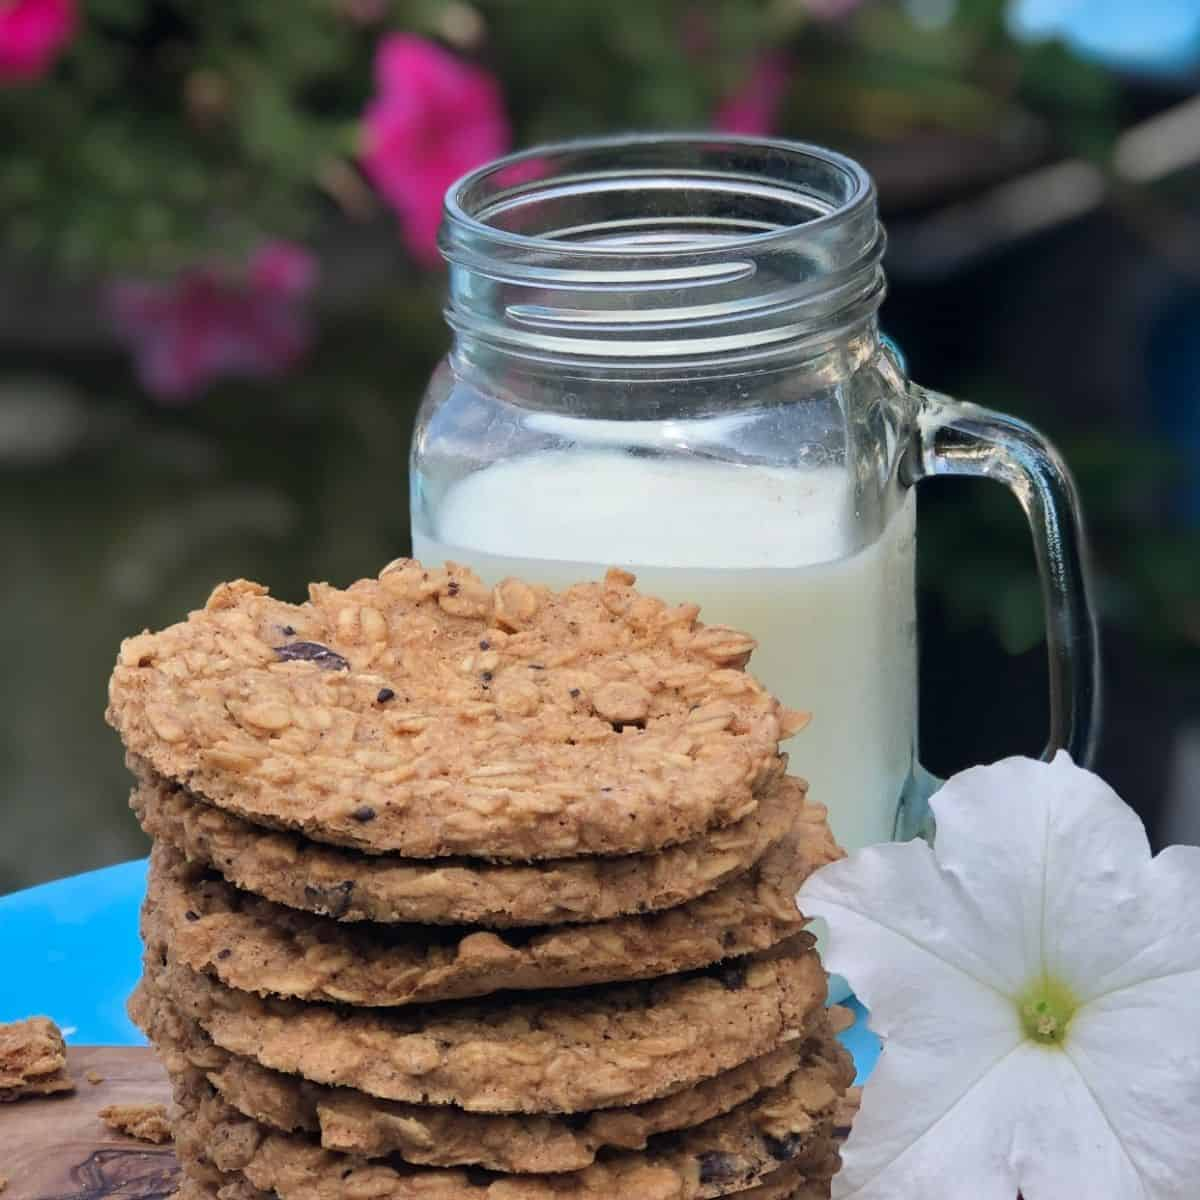 A stack of six oatmeal cookies with a glass of milk in a clear mason glass jar and a white petunia